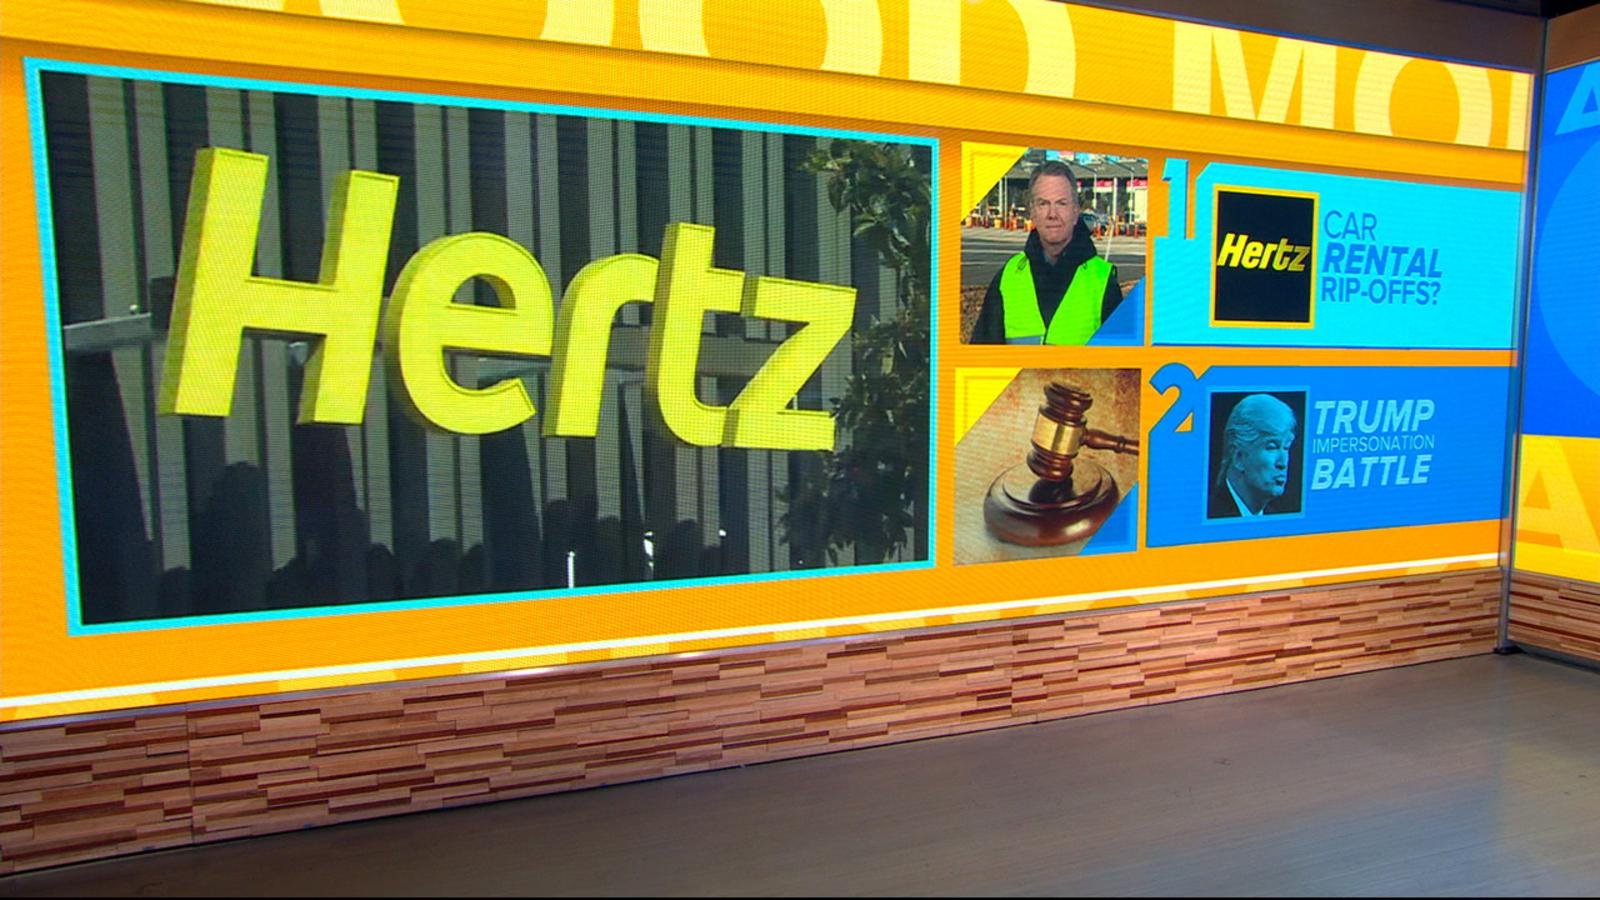 Hertz Global Holdings Videos At Abc News Video Archive At